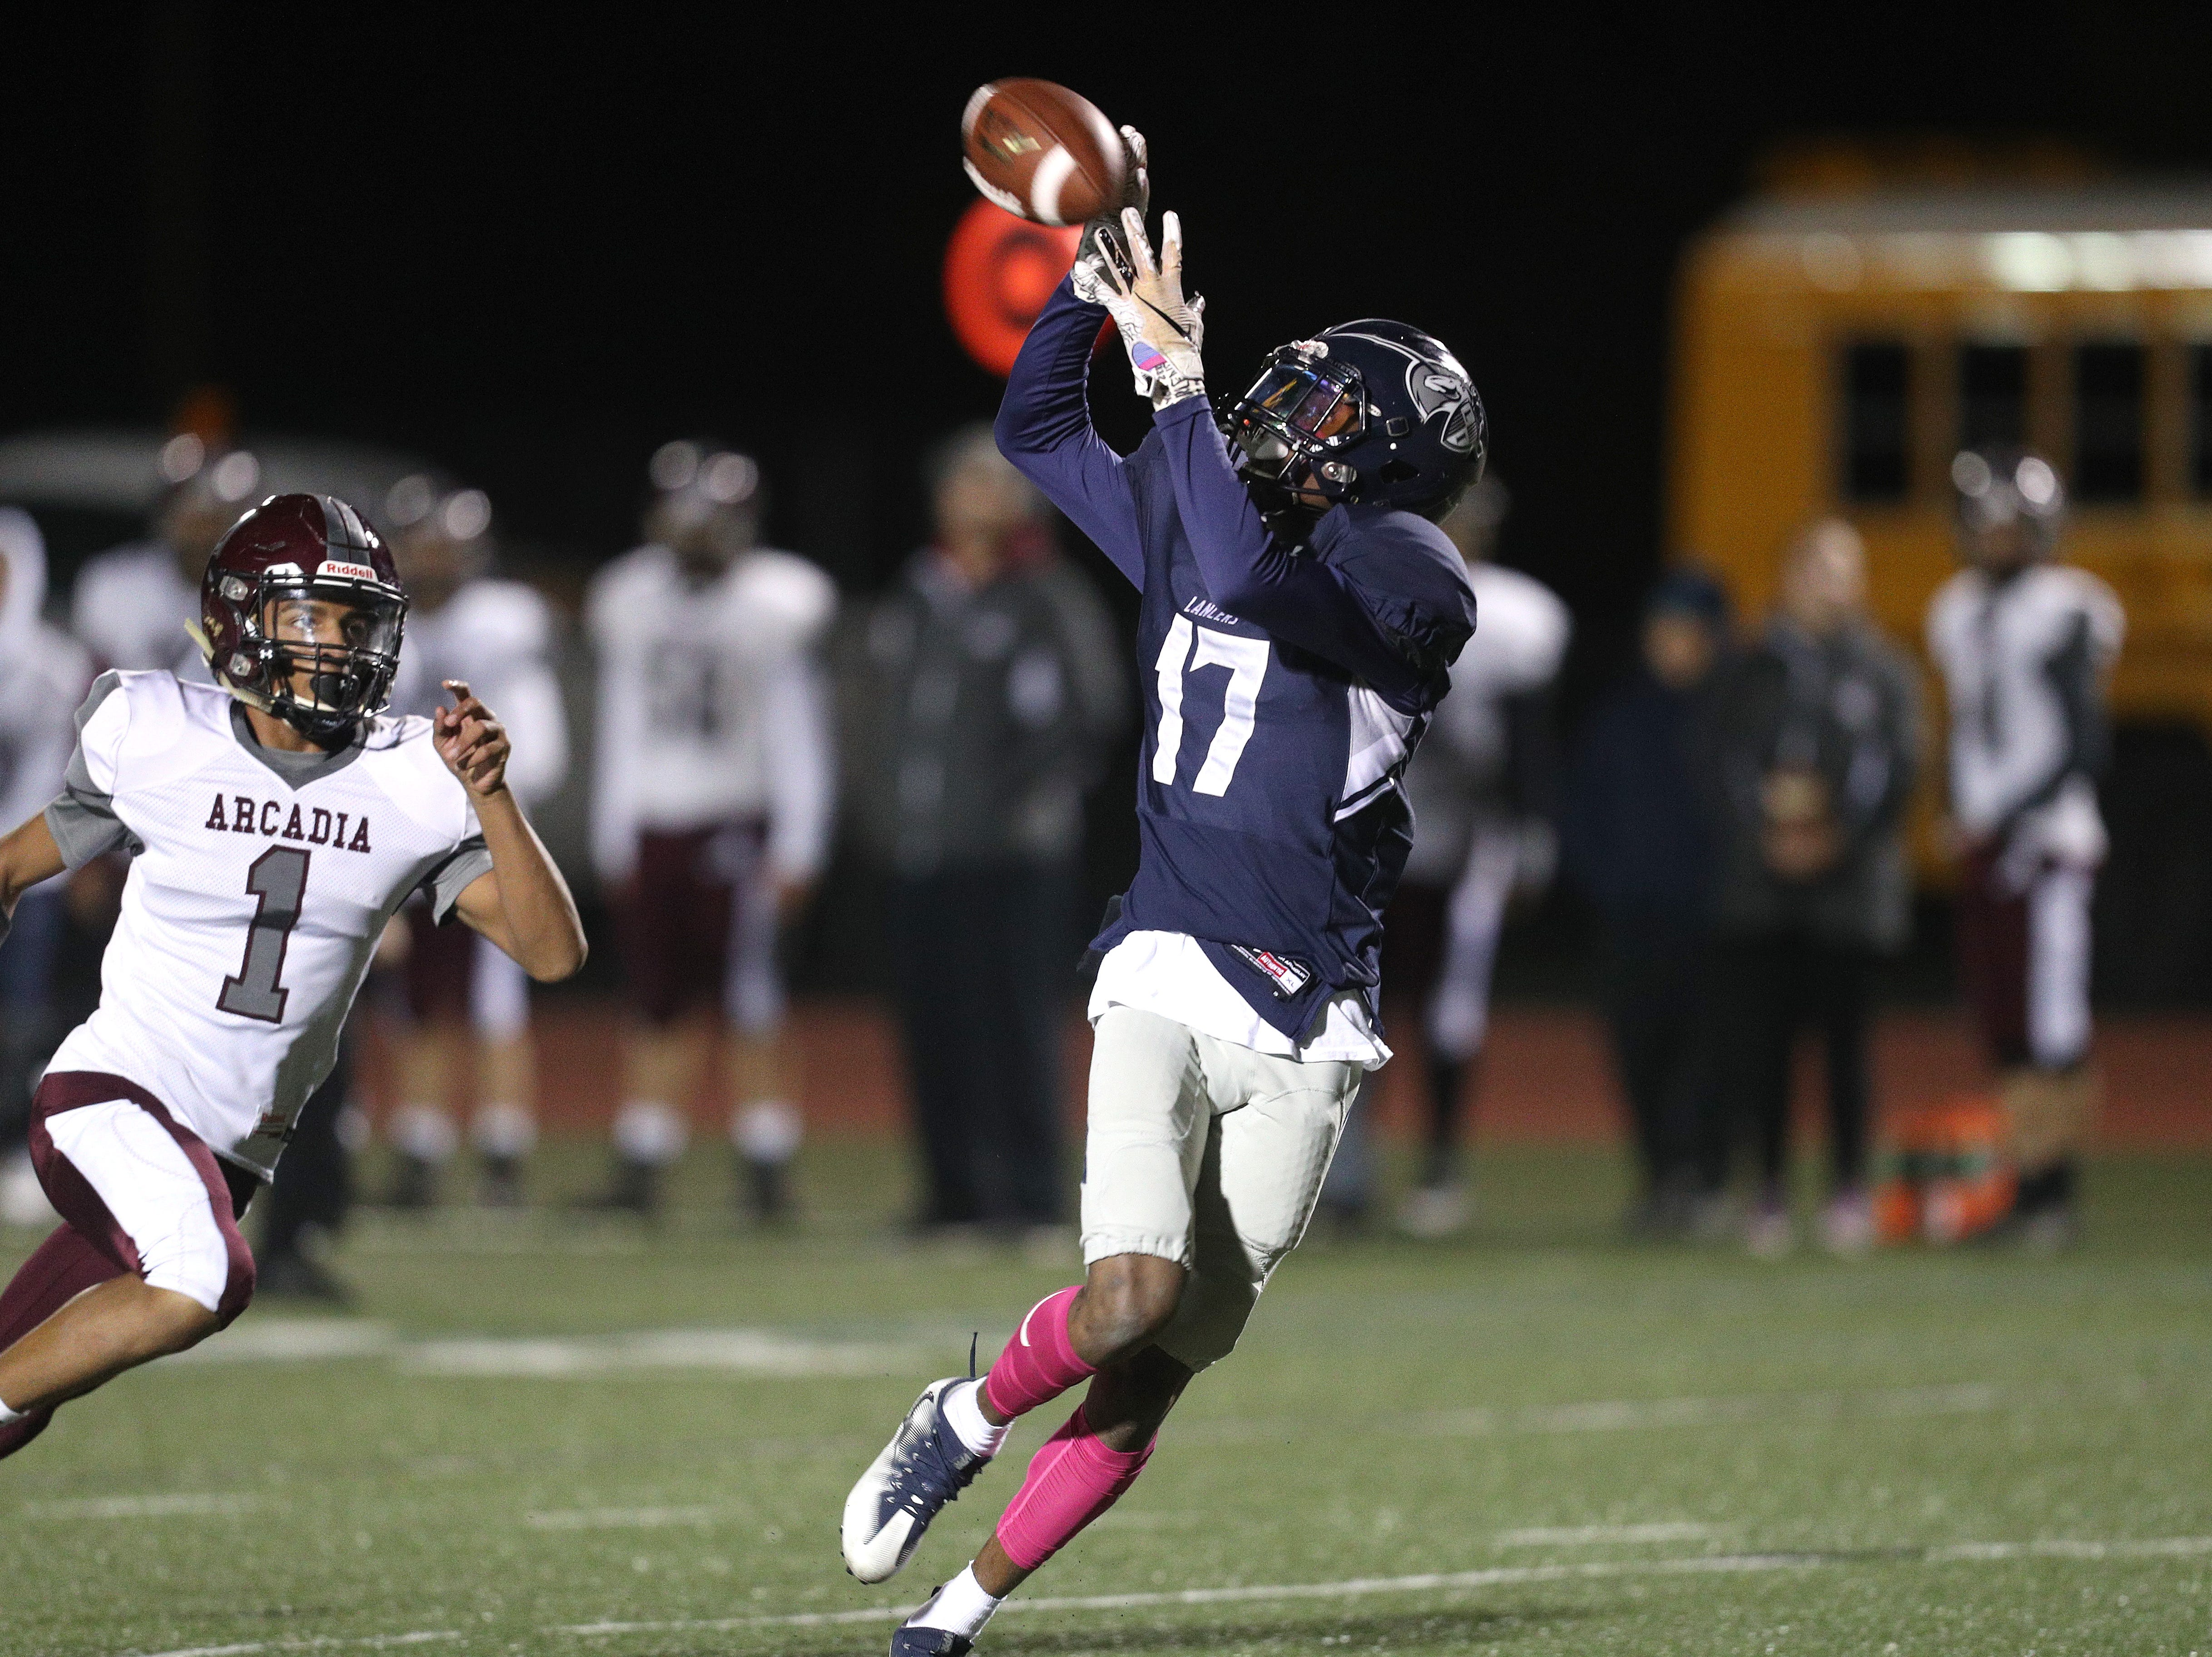 Eastridge receiver Tony Arnold catches a 45-yard touchdown pass behind  Greece Arcadia's Anthony Stephenson in a 28-14 Lancers win.